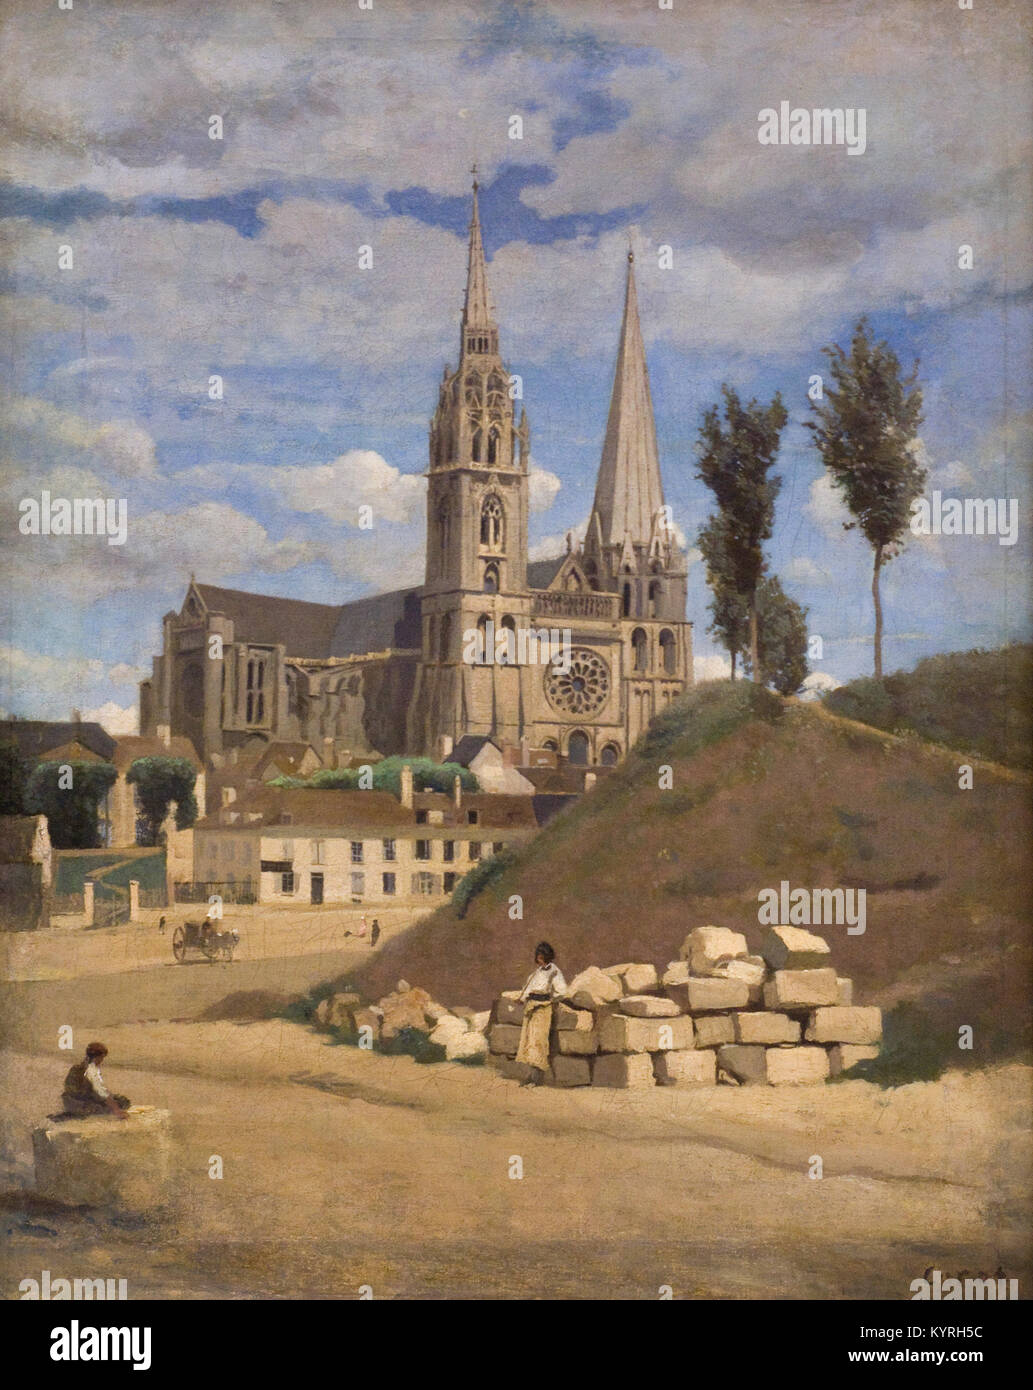 COROT Camille -  La cathédrale de Chartres - The Cathedral of Chartres 1830 XIX th Century French school - Stock Image